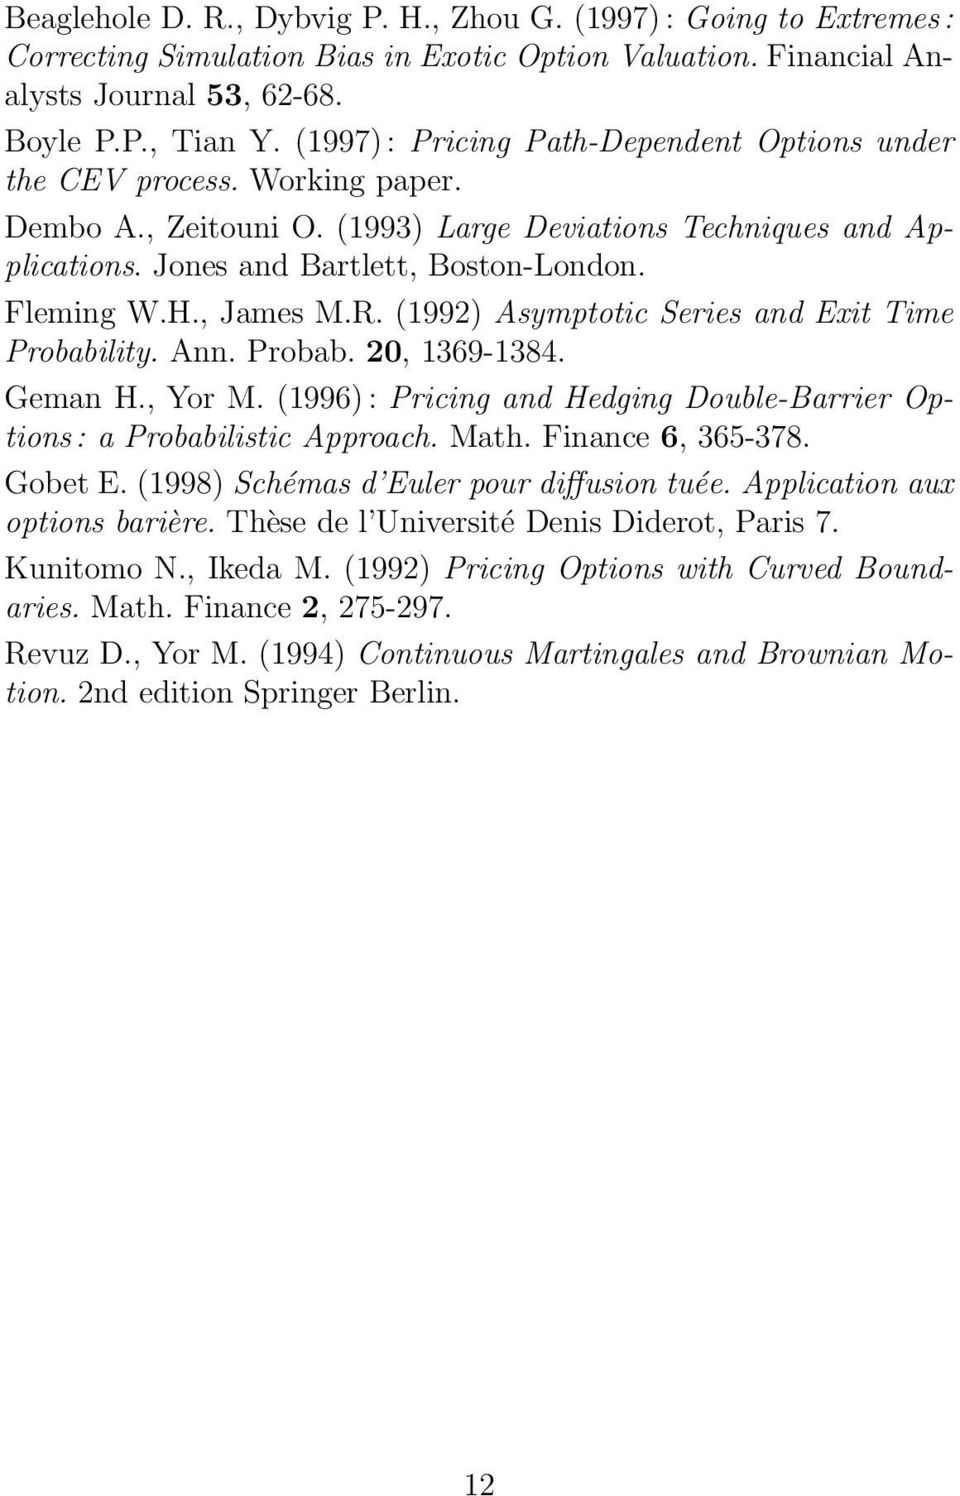 , James M.R. (199) Asymptotic Series and Exit Time Probability. Ann. Probab. 0, 1369-1384. Geman H., Yor M. (1996) : Pricing and Hedging Double-Barrier Options : a Probabilistic Approach. Math.